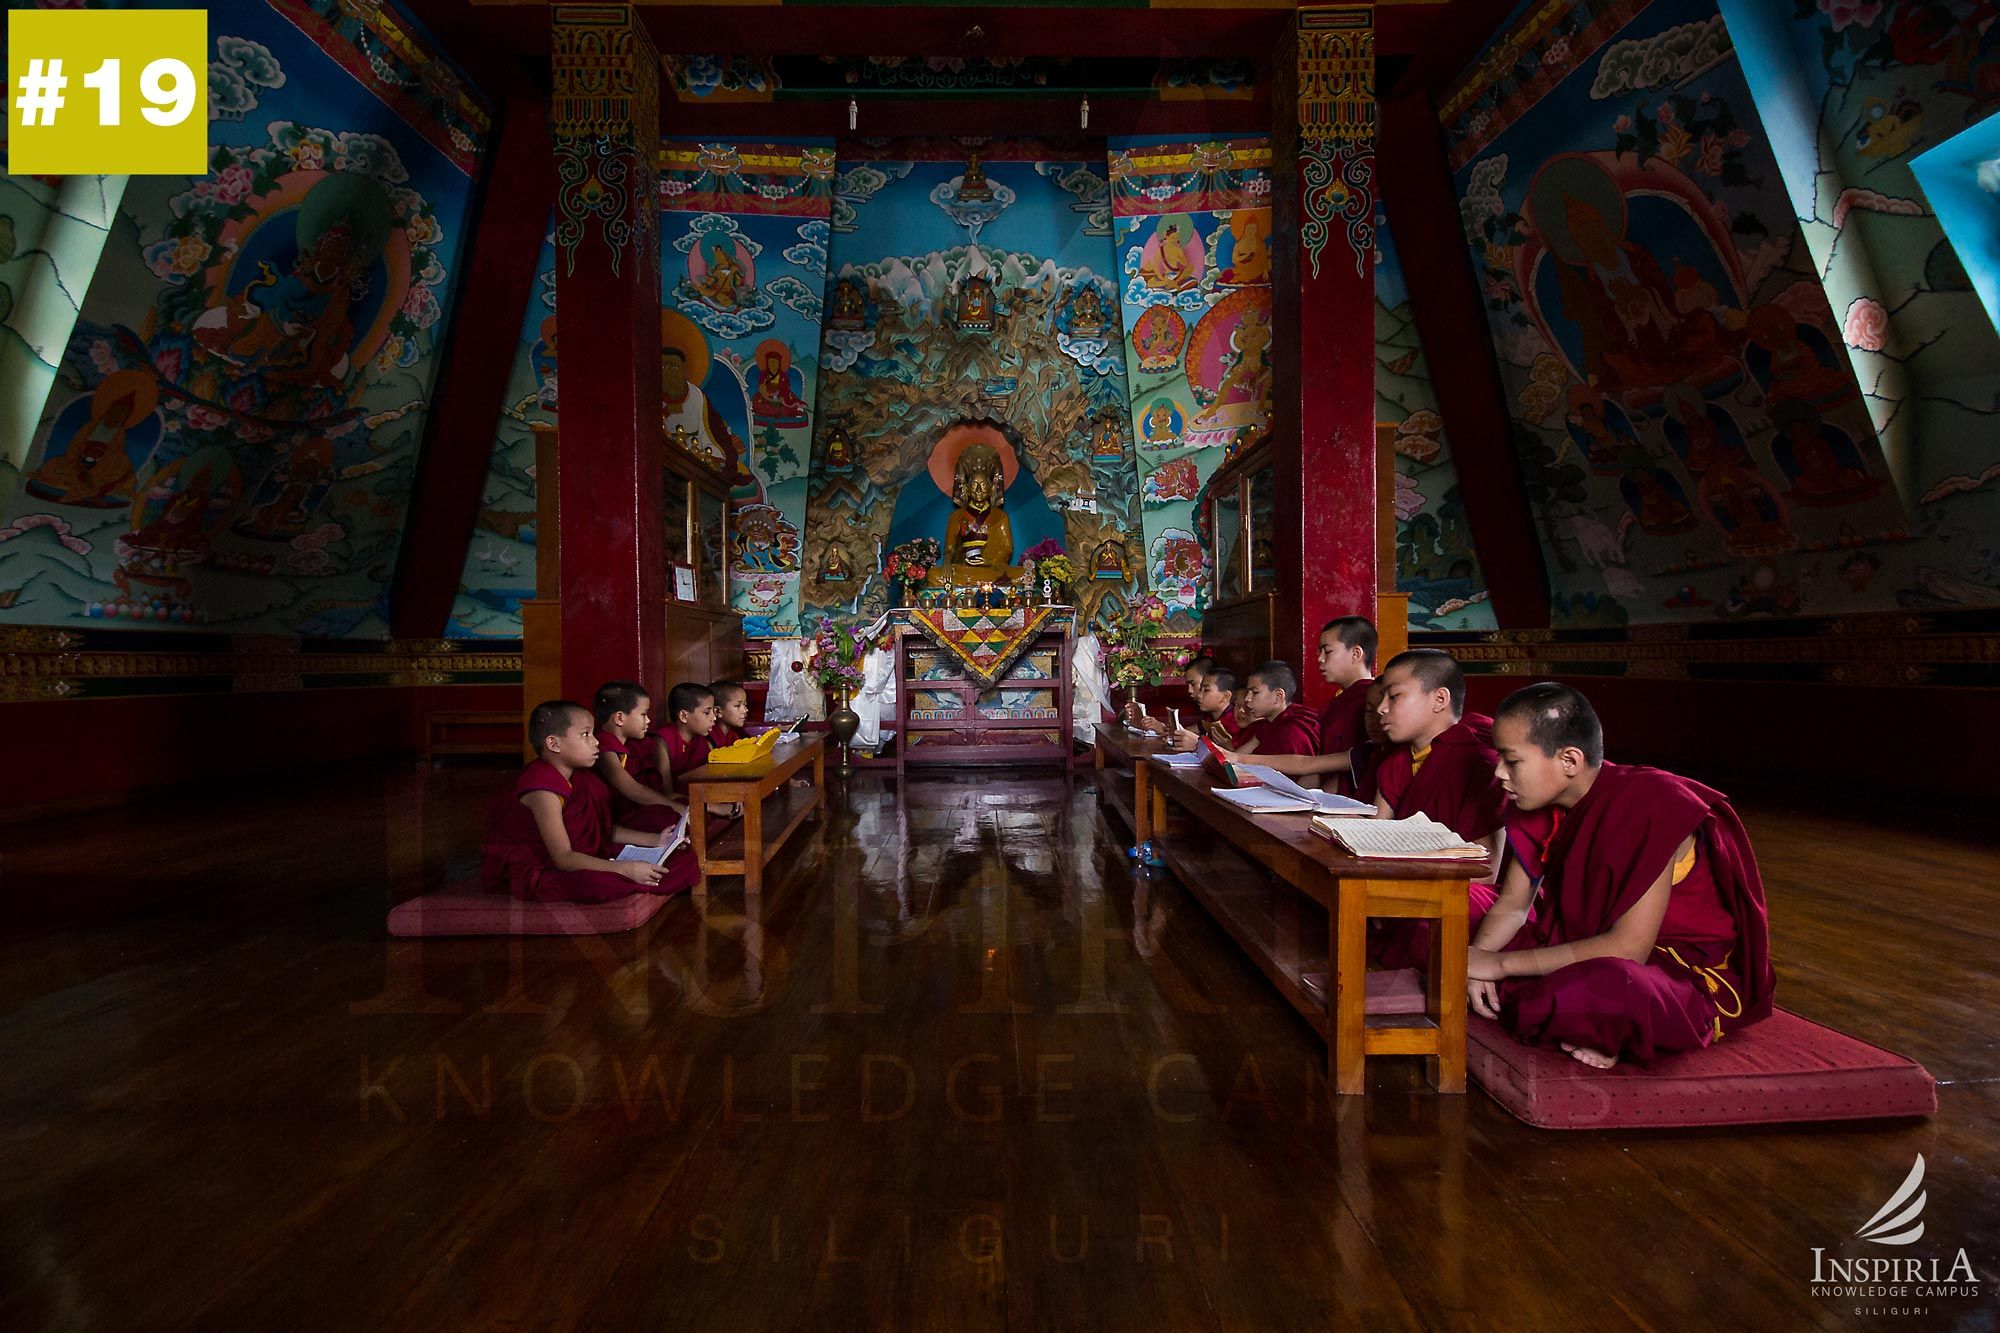 salugara-monastery-monks-children-prayer-room-1001-things-to-do-Inspiria-Knowledge-Campus-wb